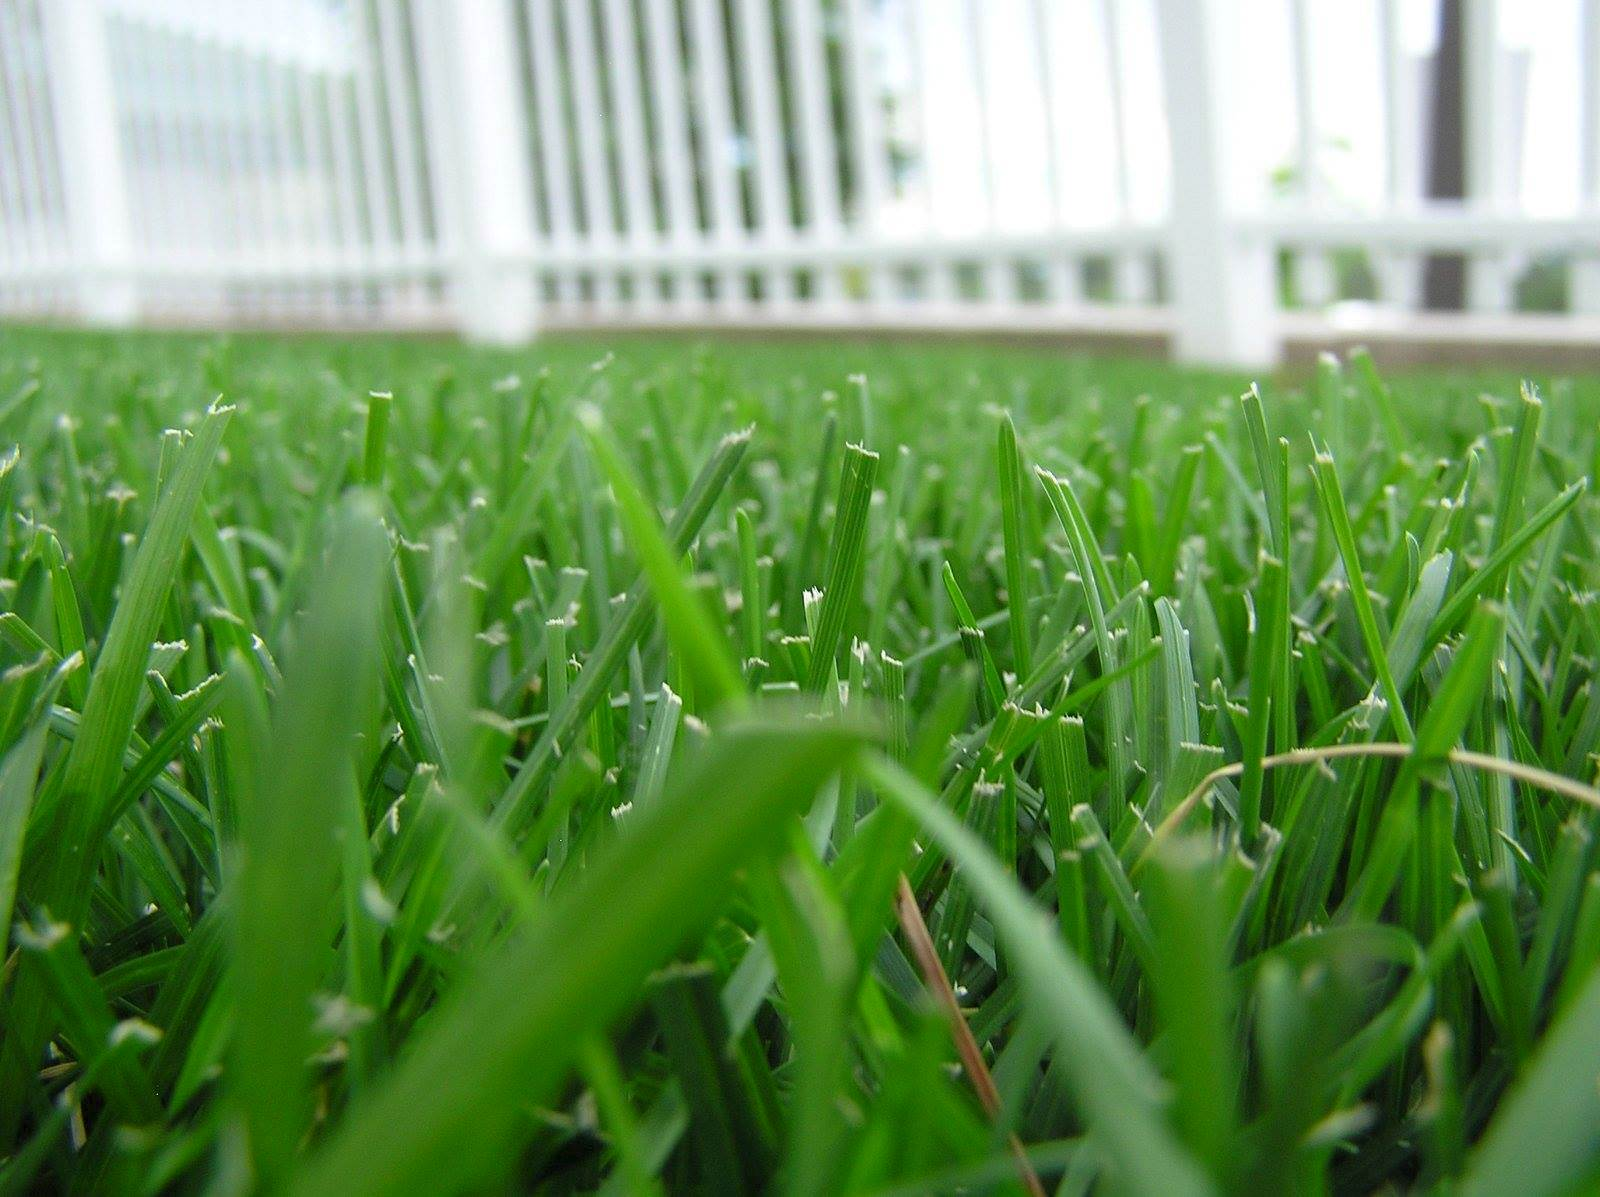 grass photo: Free Images.com/Colin Smith